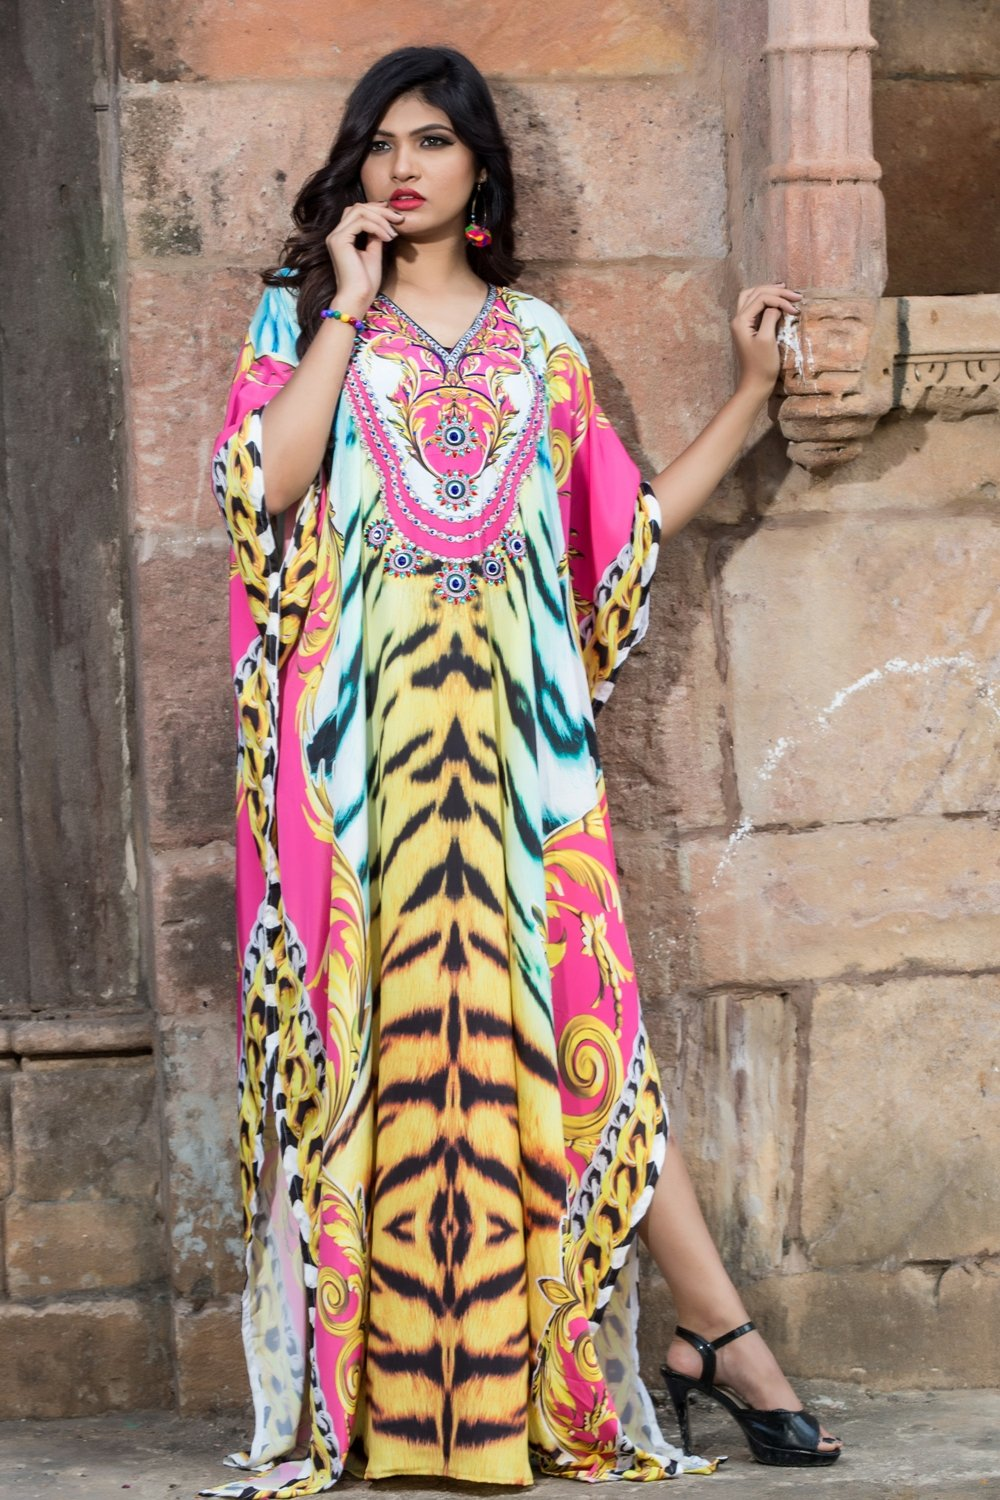 Tigress in silk Kaftan Dress printed with Artistic patterns highly Embellished - Silk kaftan